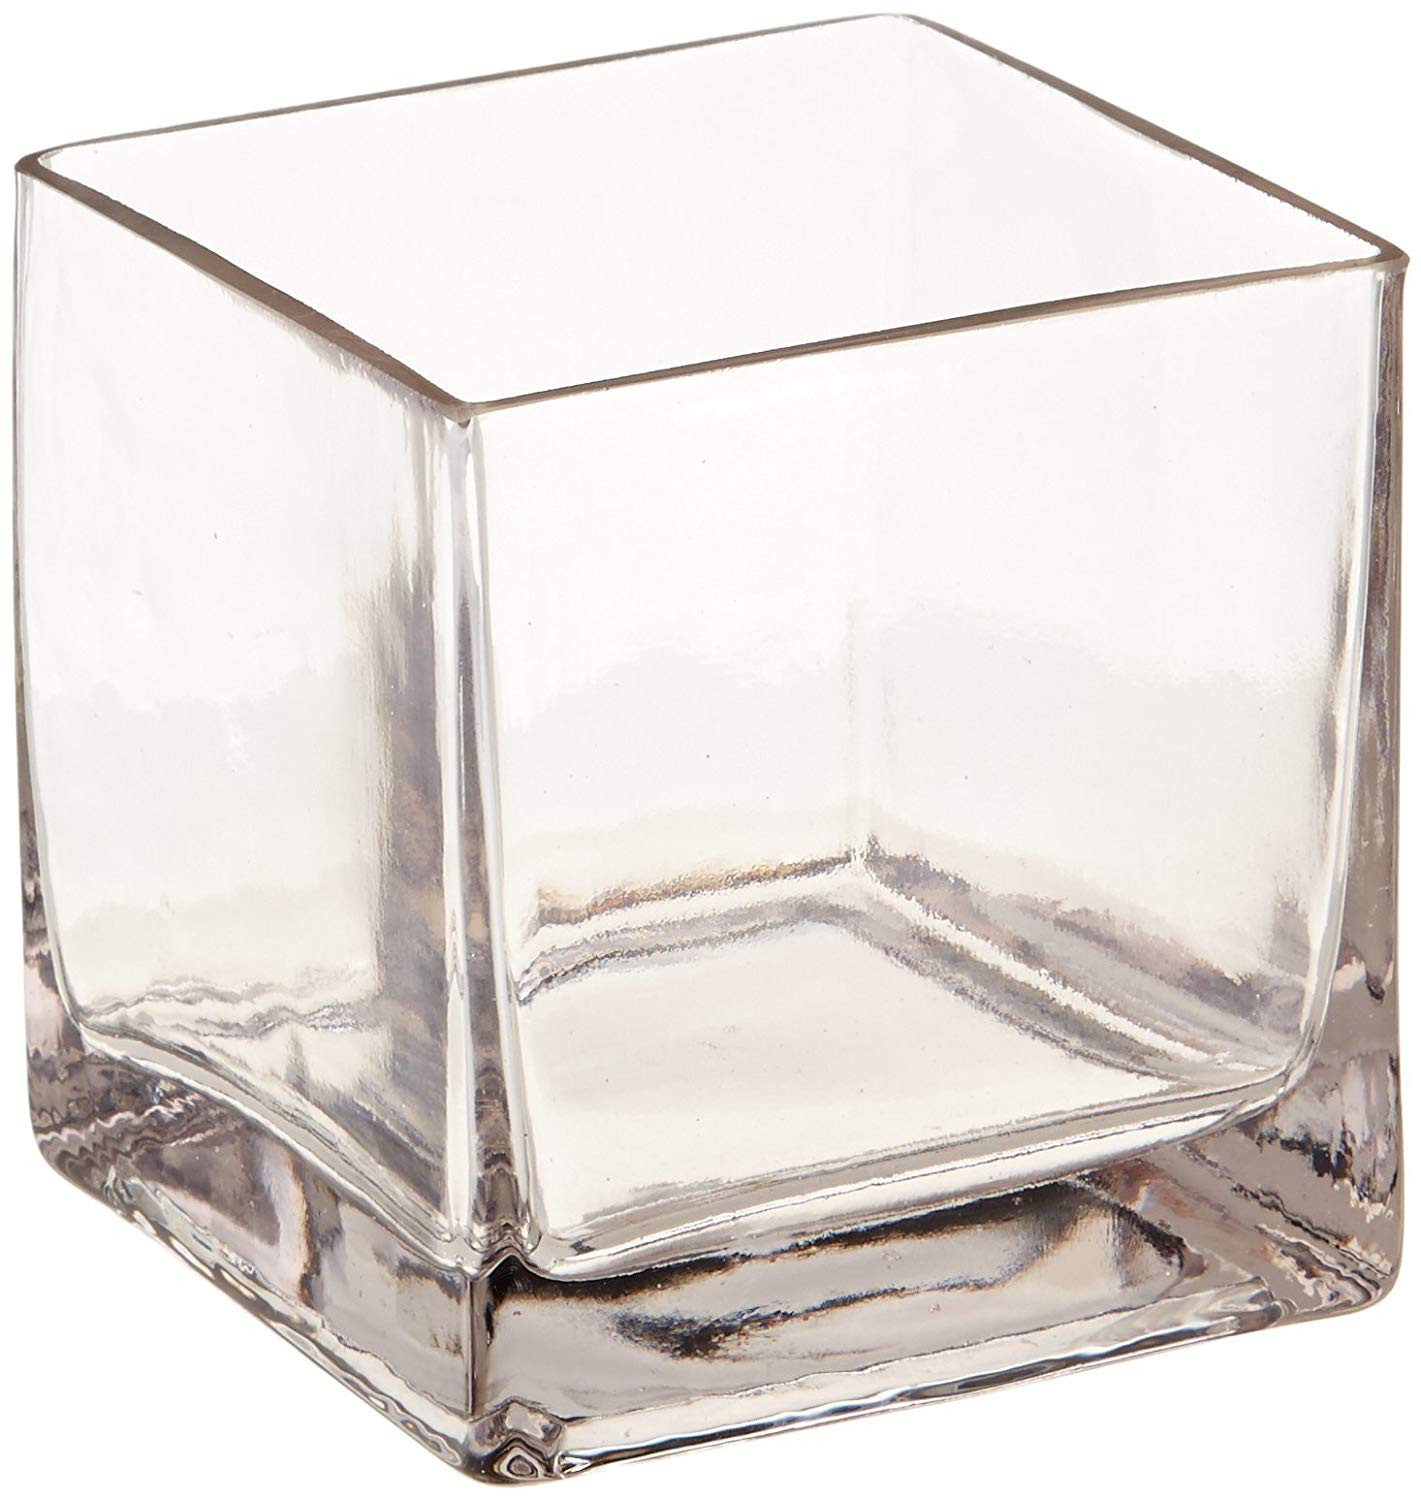 low rectangular glass vase of amazon com 12piece 4 square crystal clear glass vase home kitchen inside 71 jezfmvnl sl1500